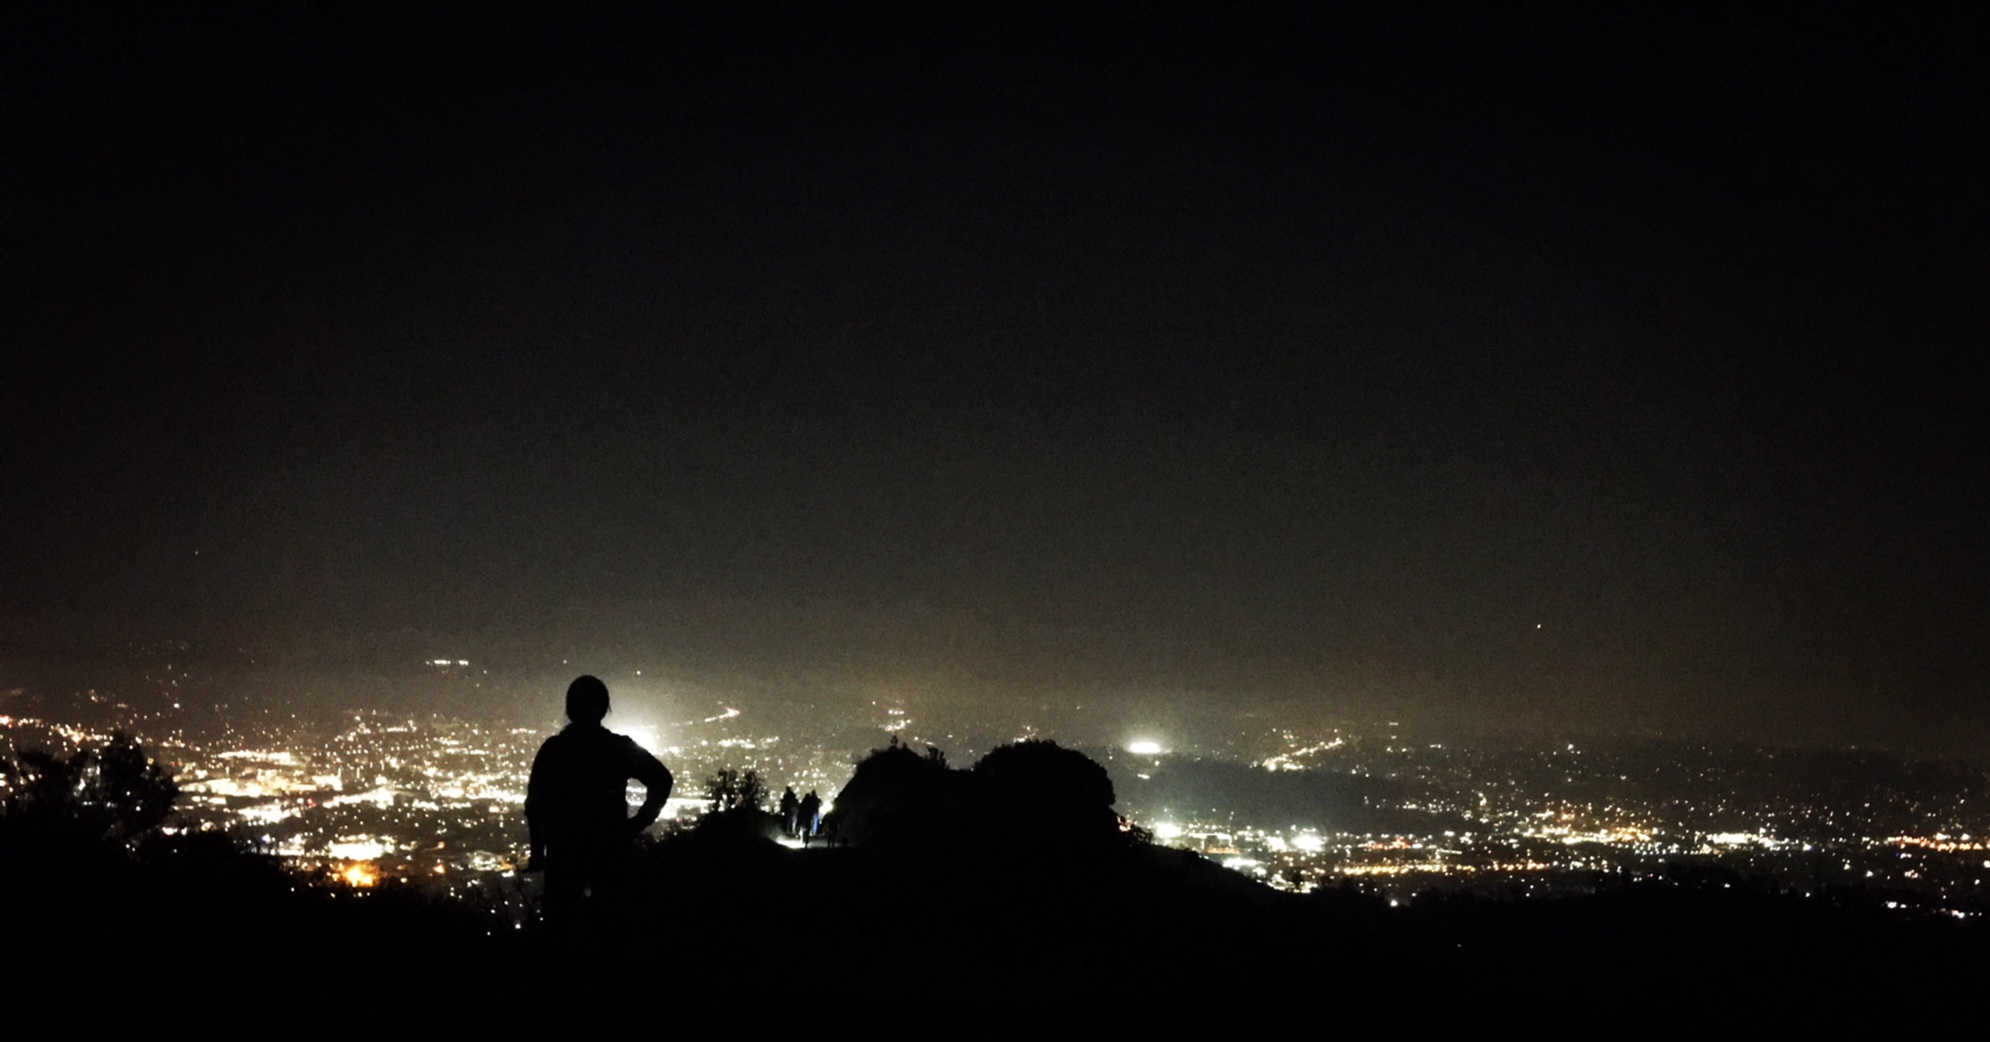 Donu0027t You Love The Company Of The Mountain Lions (from Afar), Night Sky,  And City Lights Once Youu0027ve Reached The Peak?